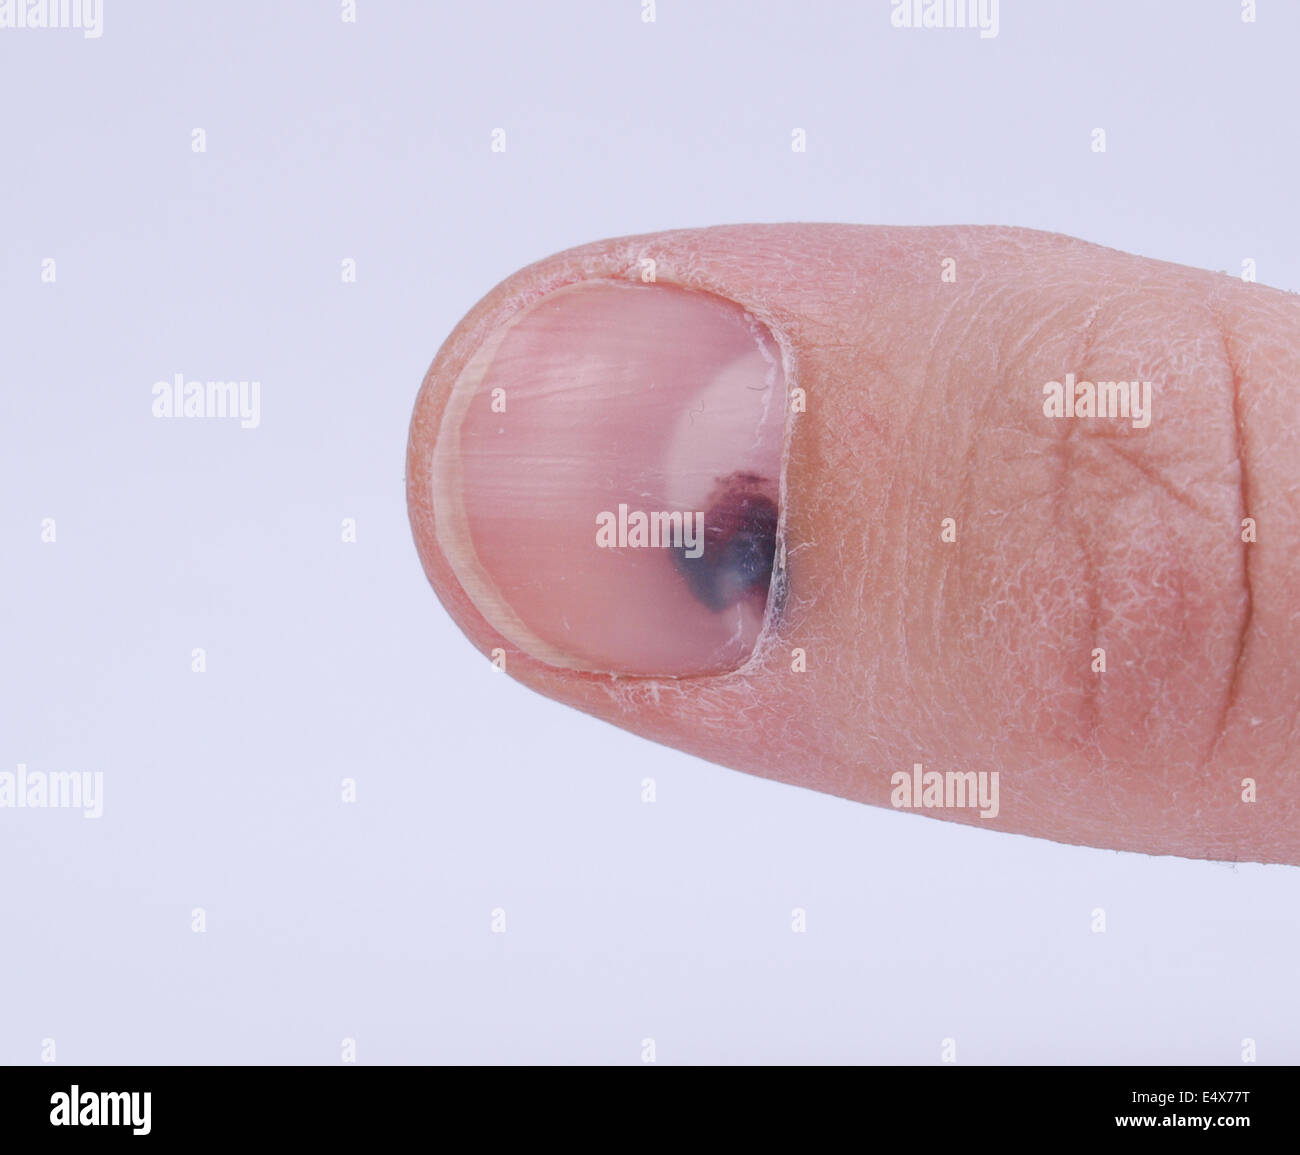 Hematoma Stock Photos & Hematoma Stock Images - Alamy